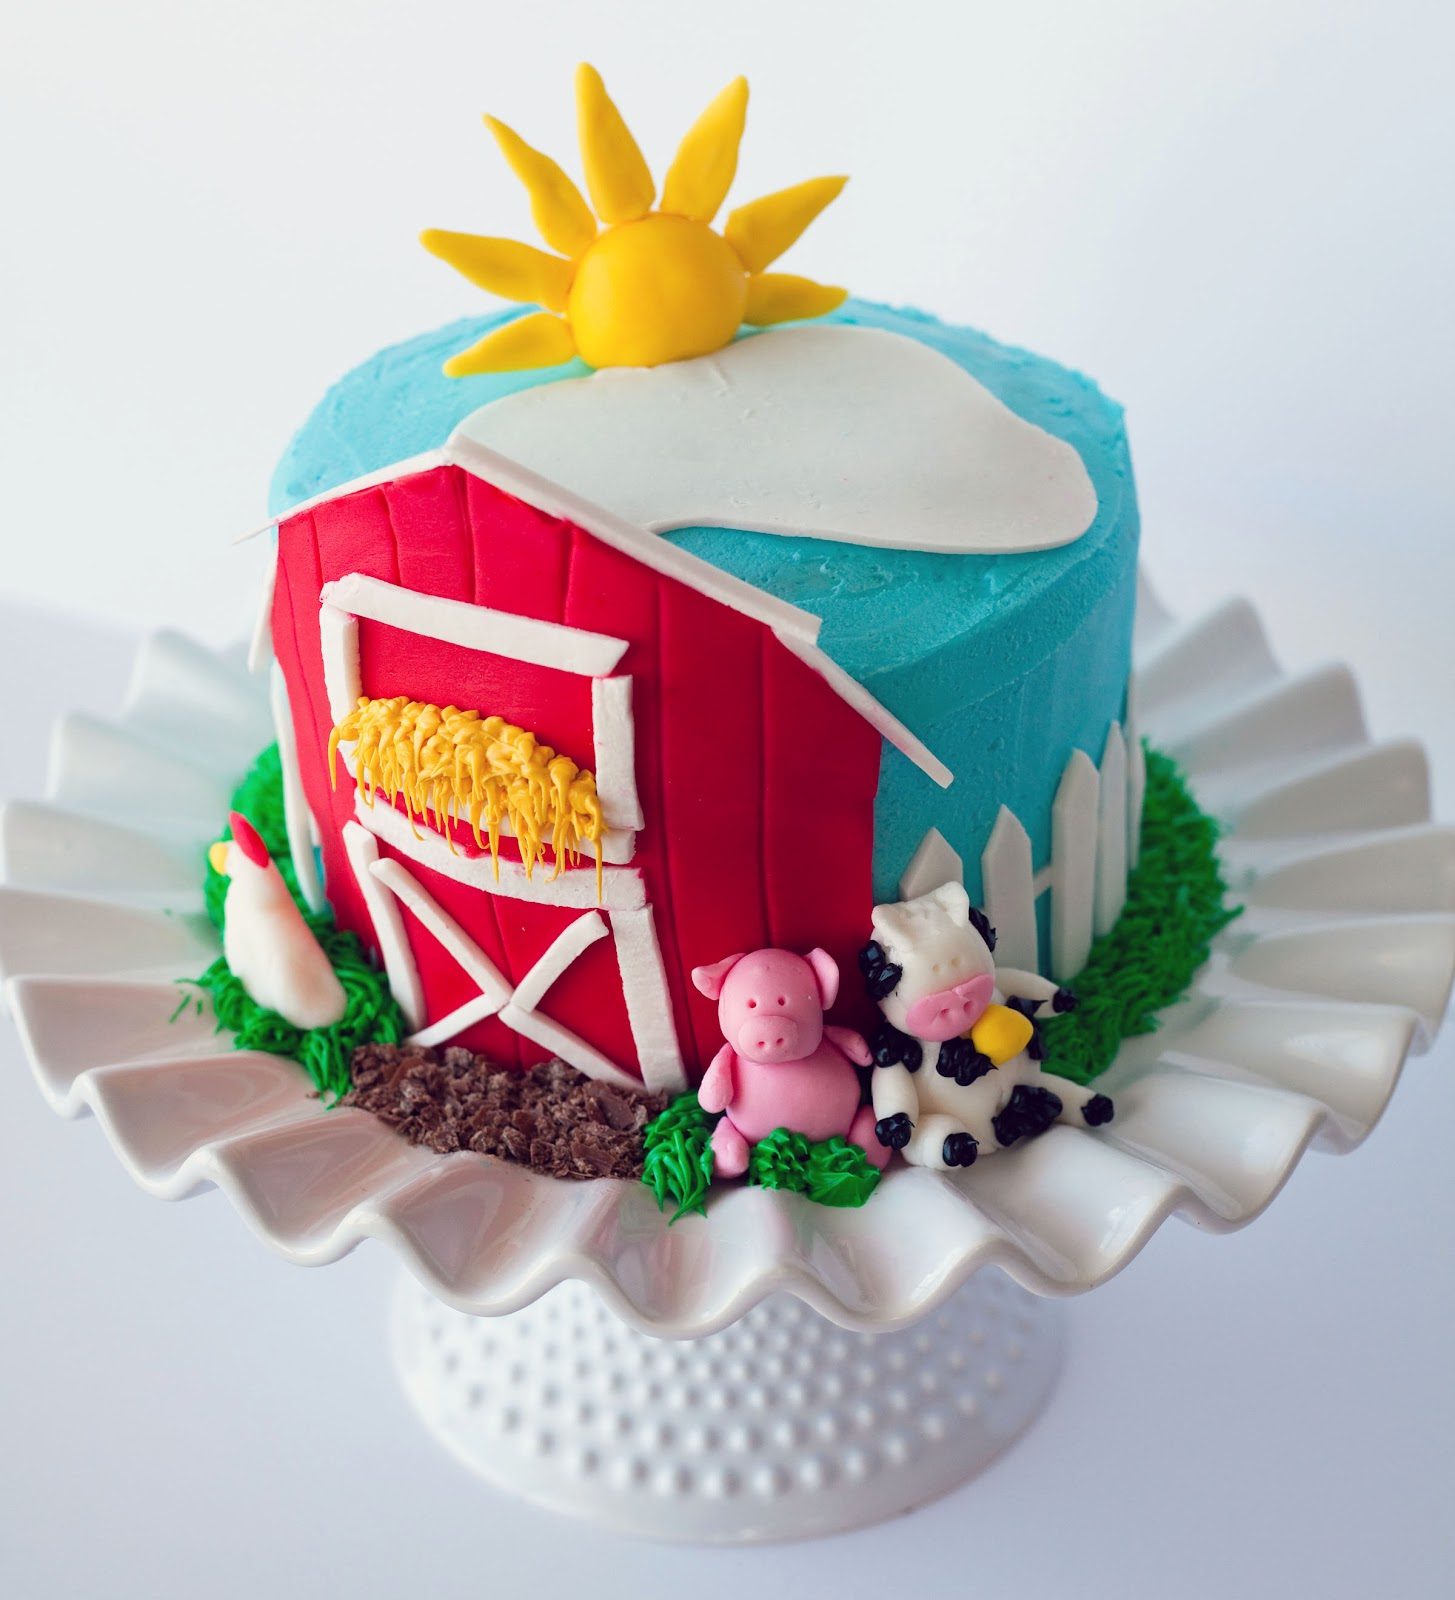 Worth Pinning: Giving Away The Farm (Cake